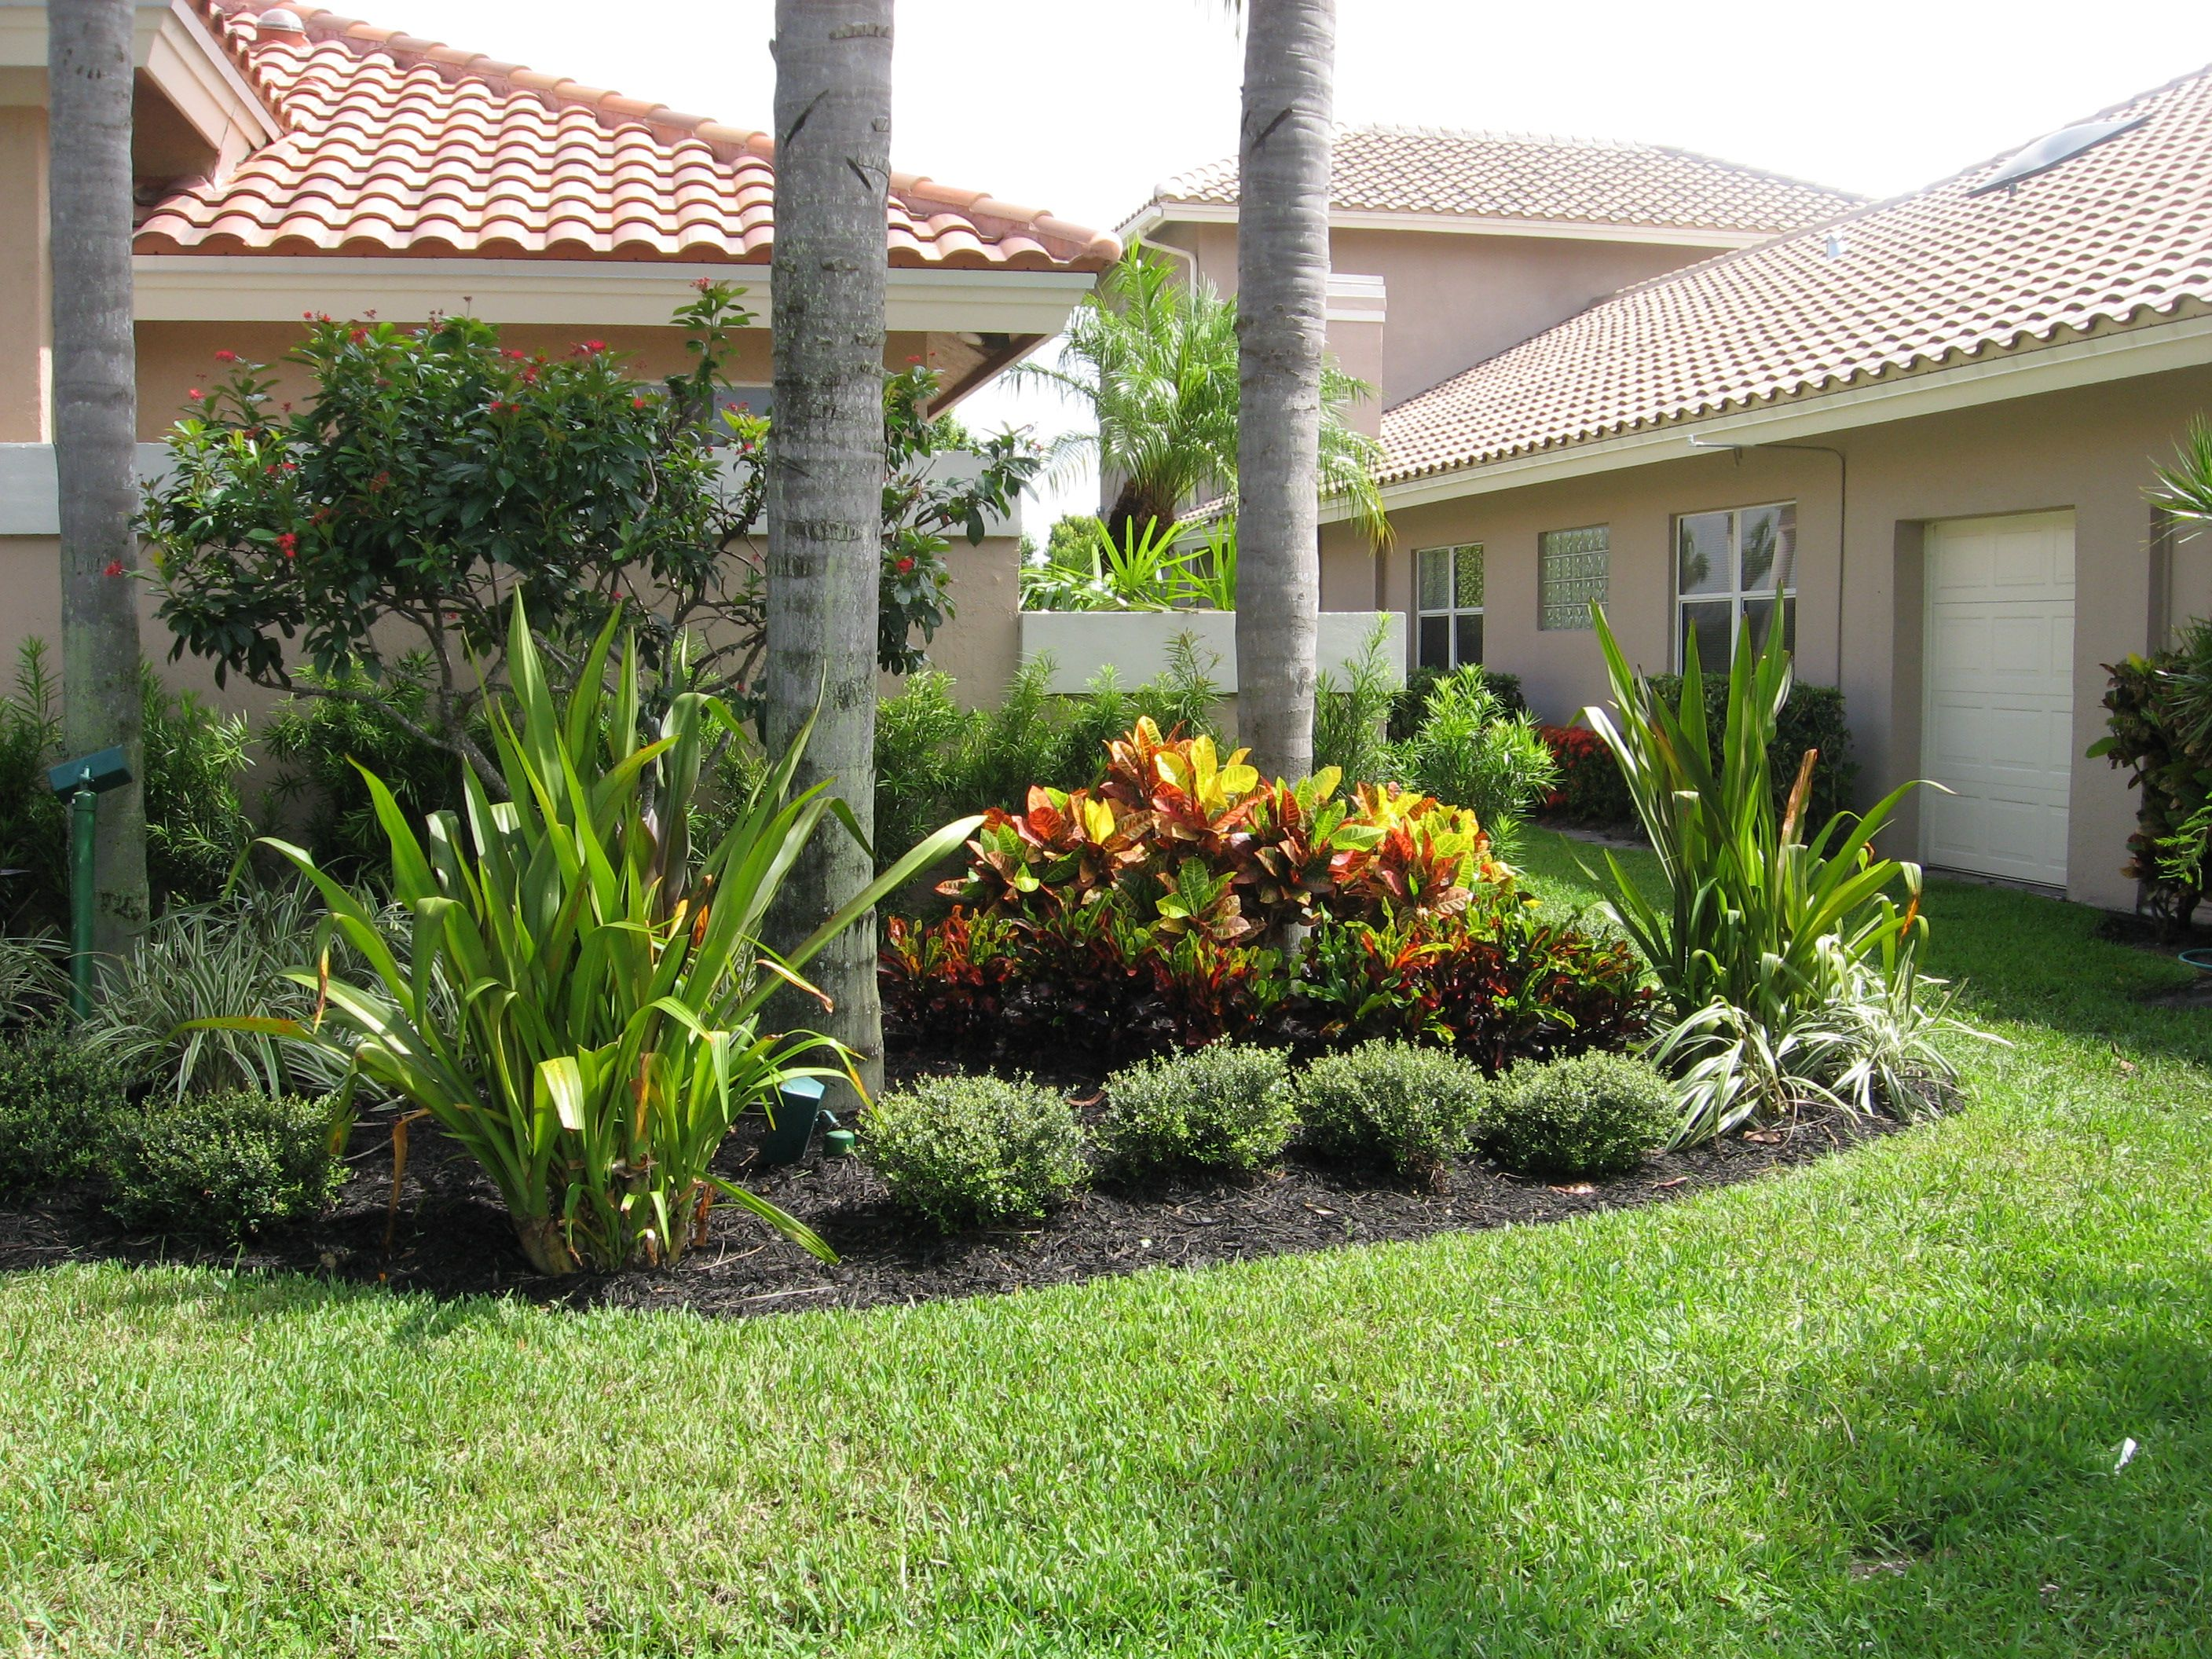 landscaping ideas for front yard florida palm tree landscaping ideas